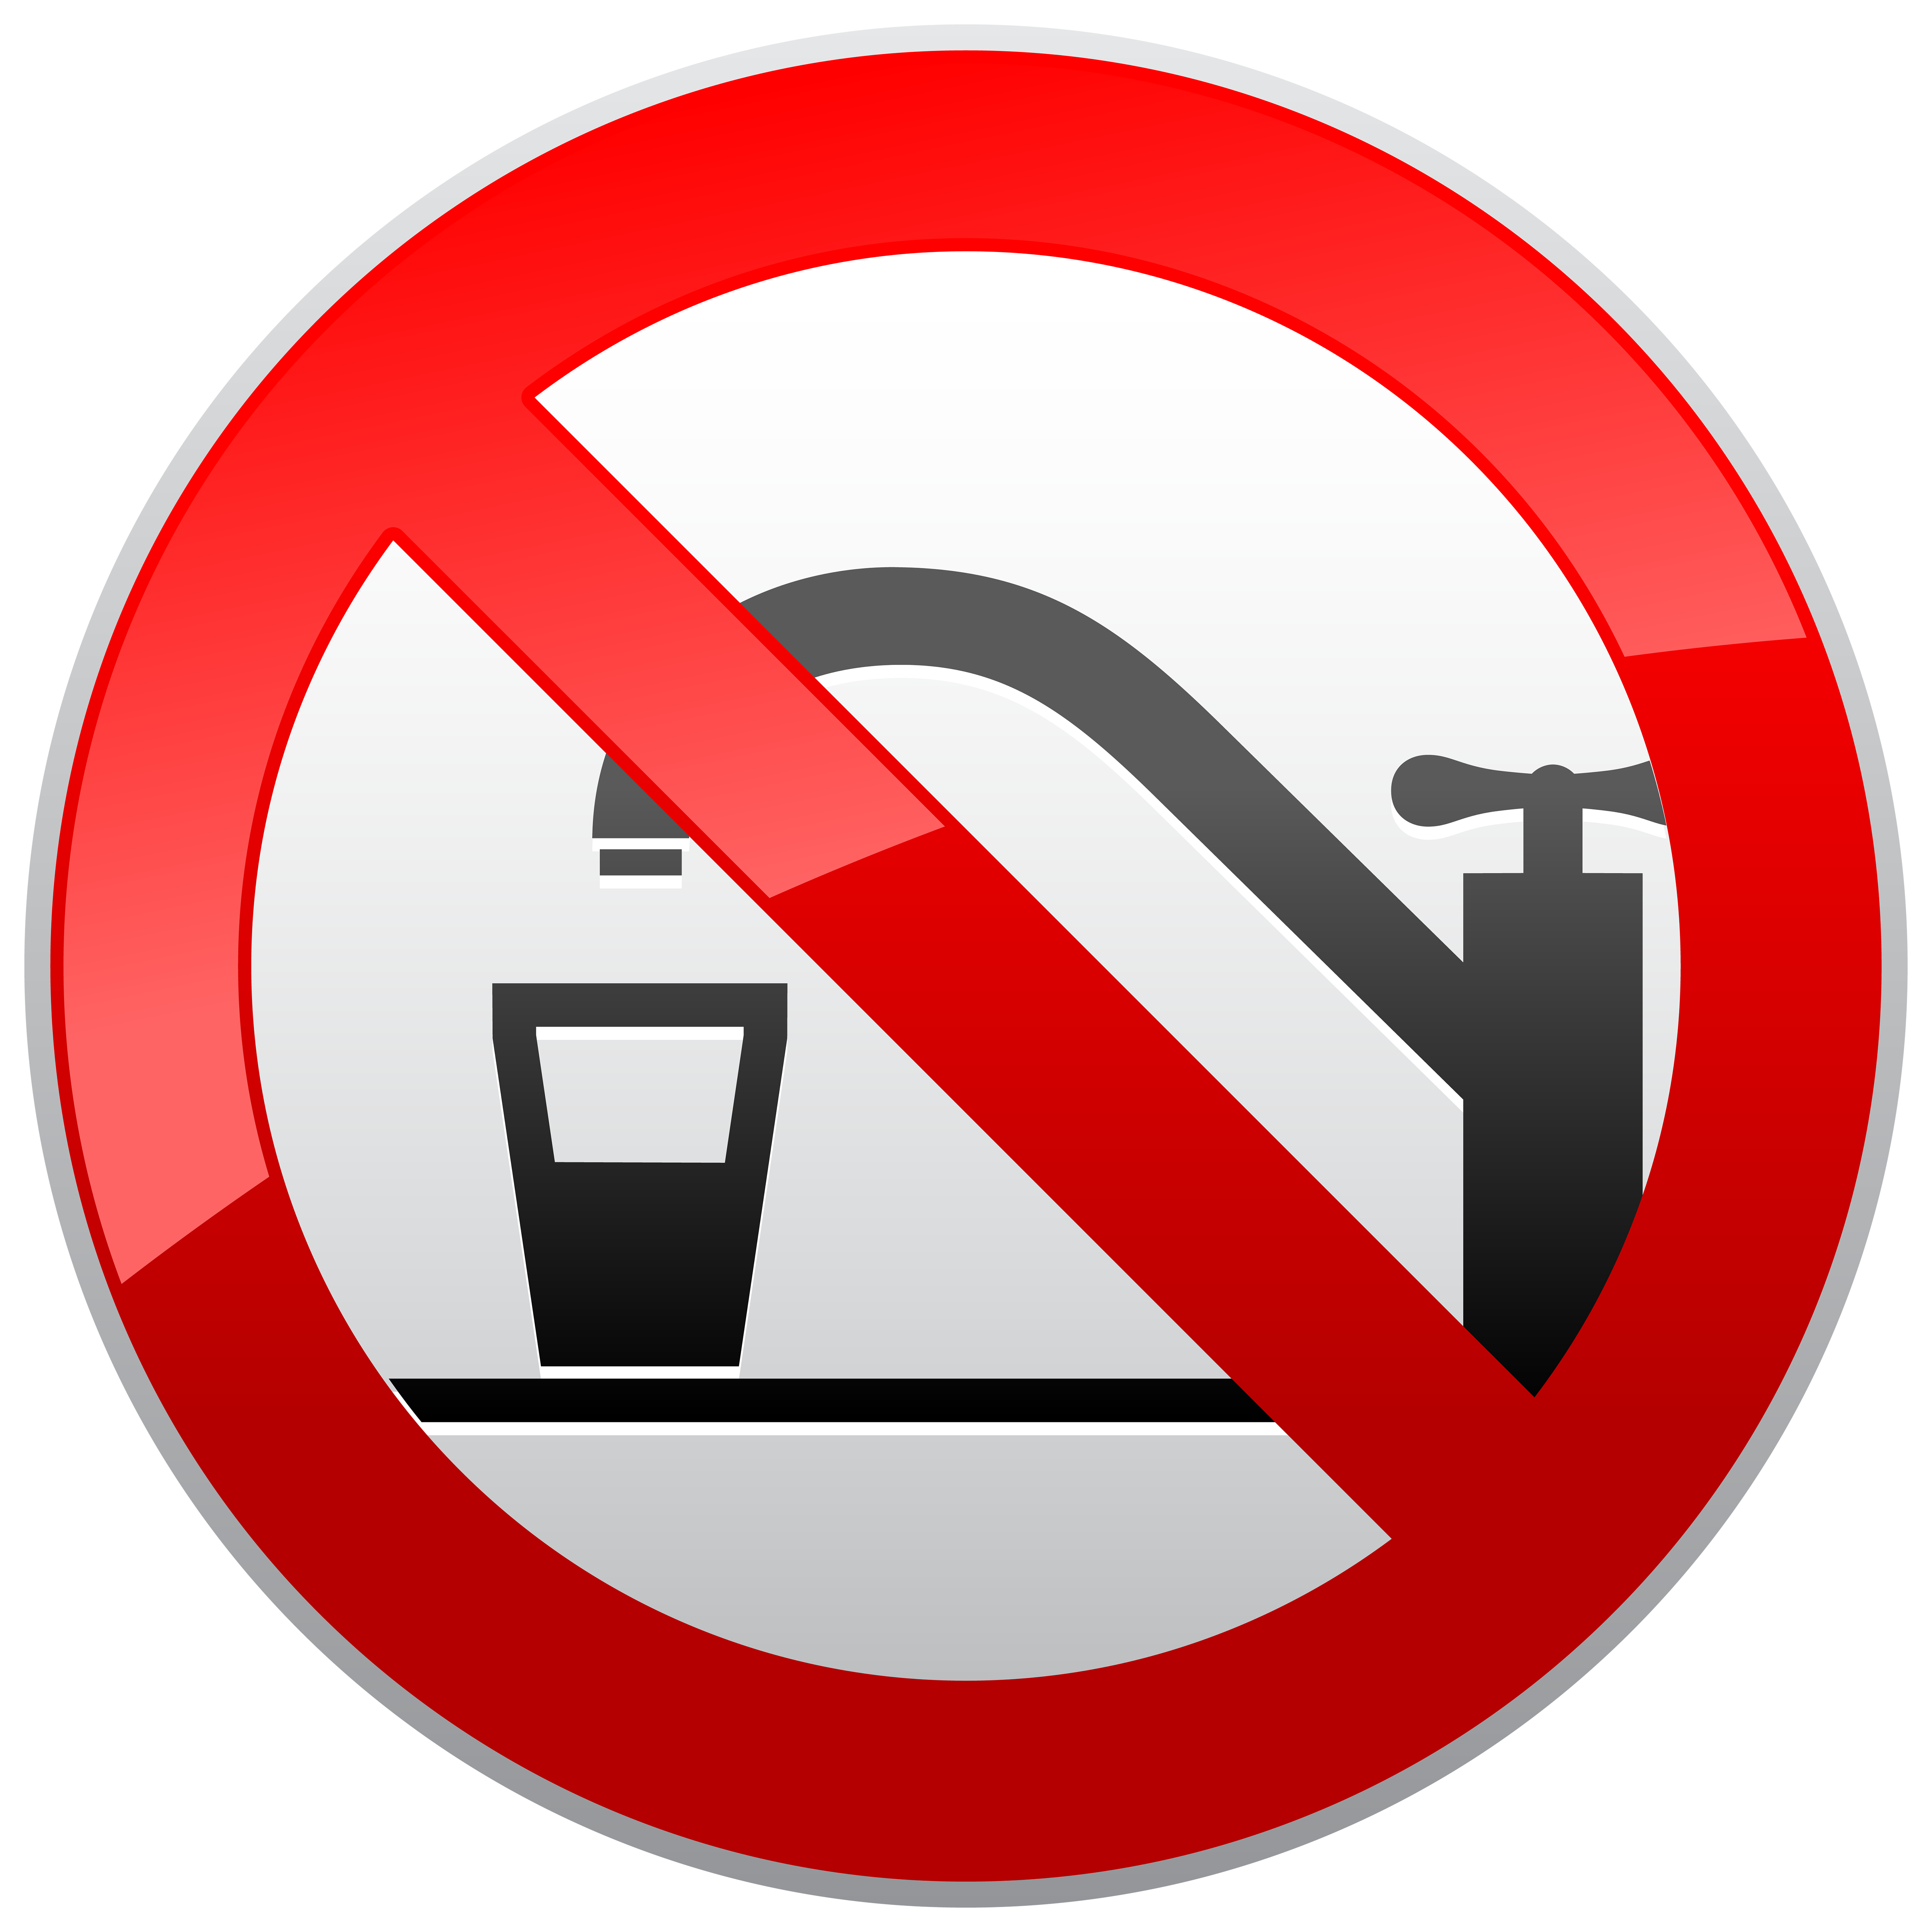 Not Drinking Water Prohibition Sign PNG Clipart.